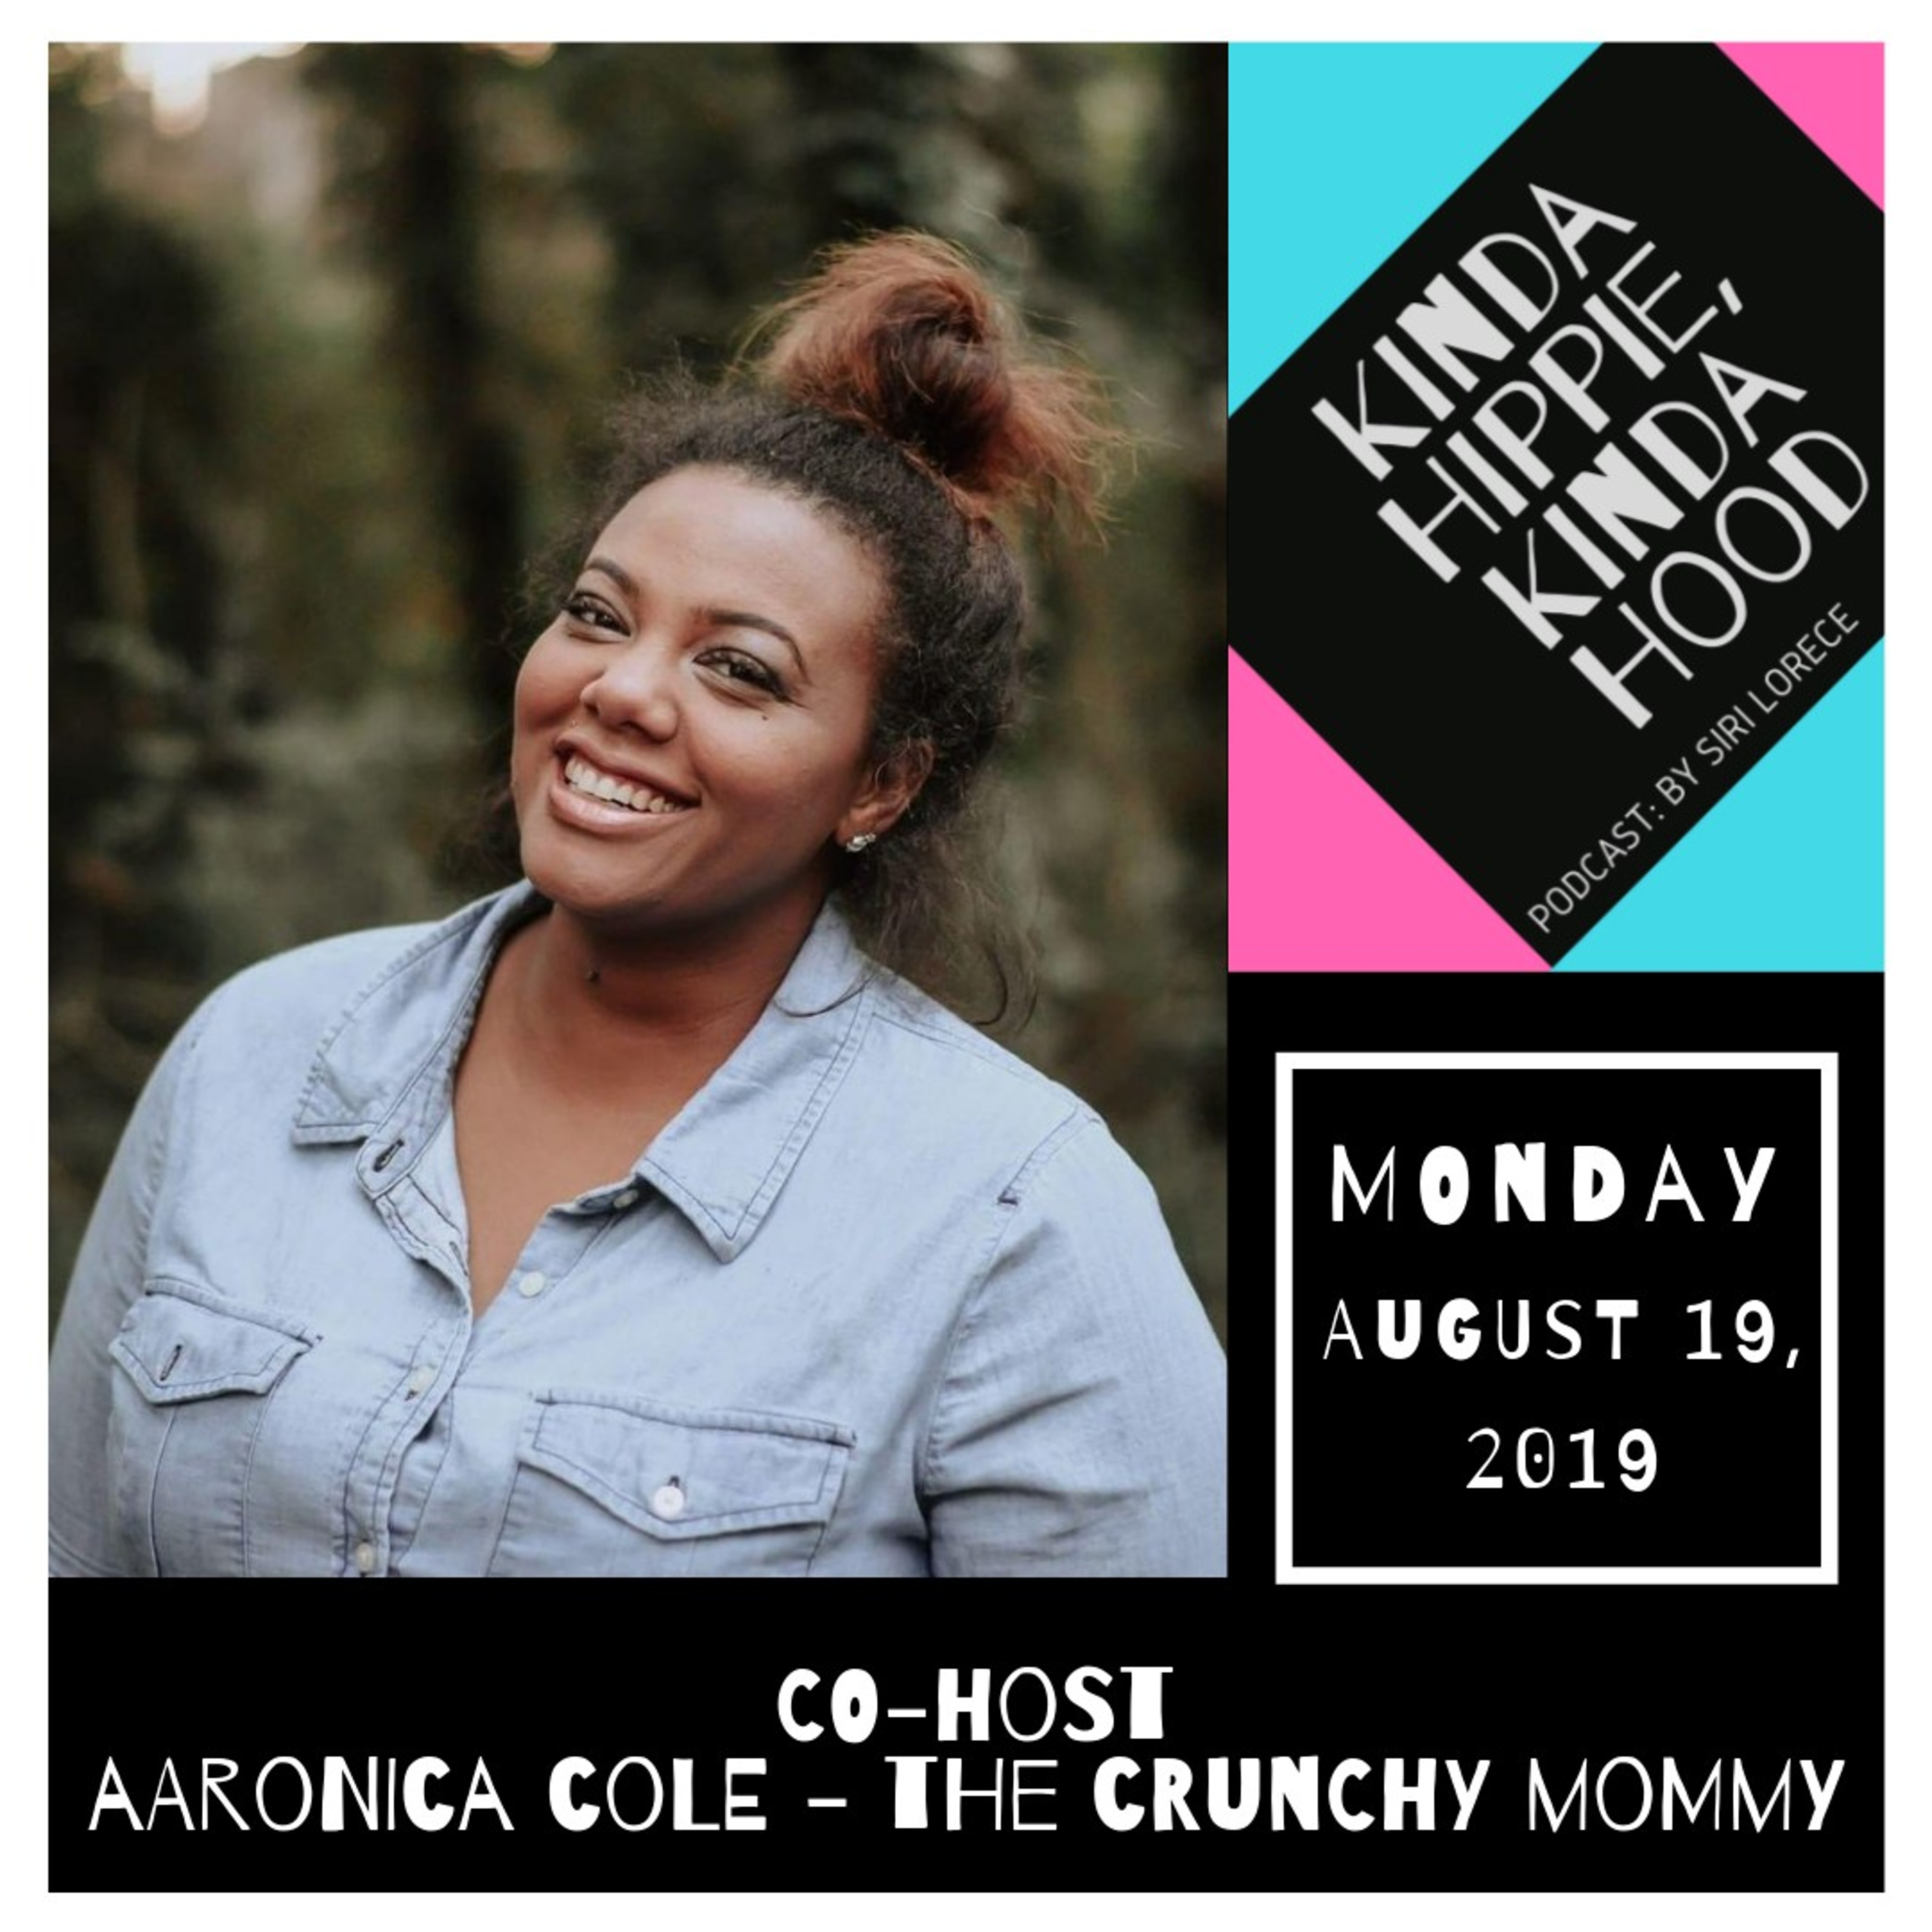 KHKH: Aaronica Cole - The Crunchy Mommy